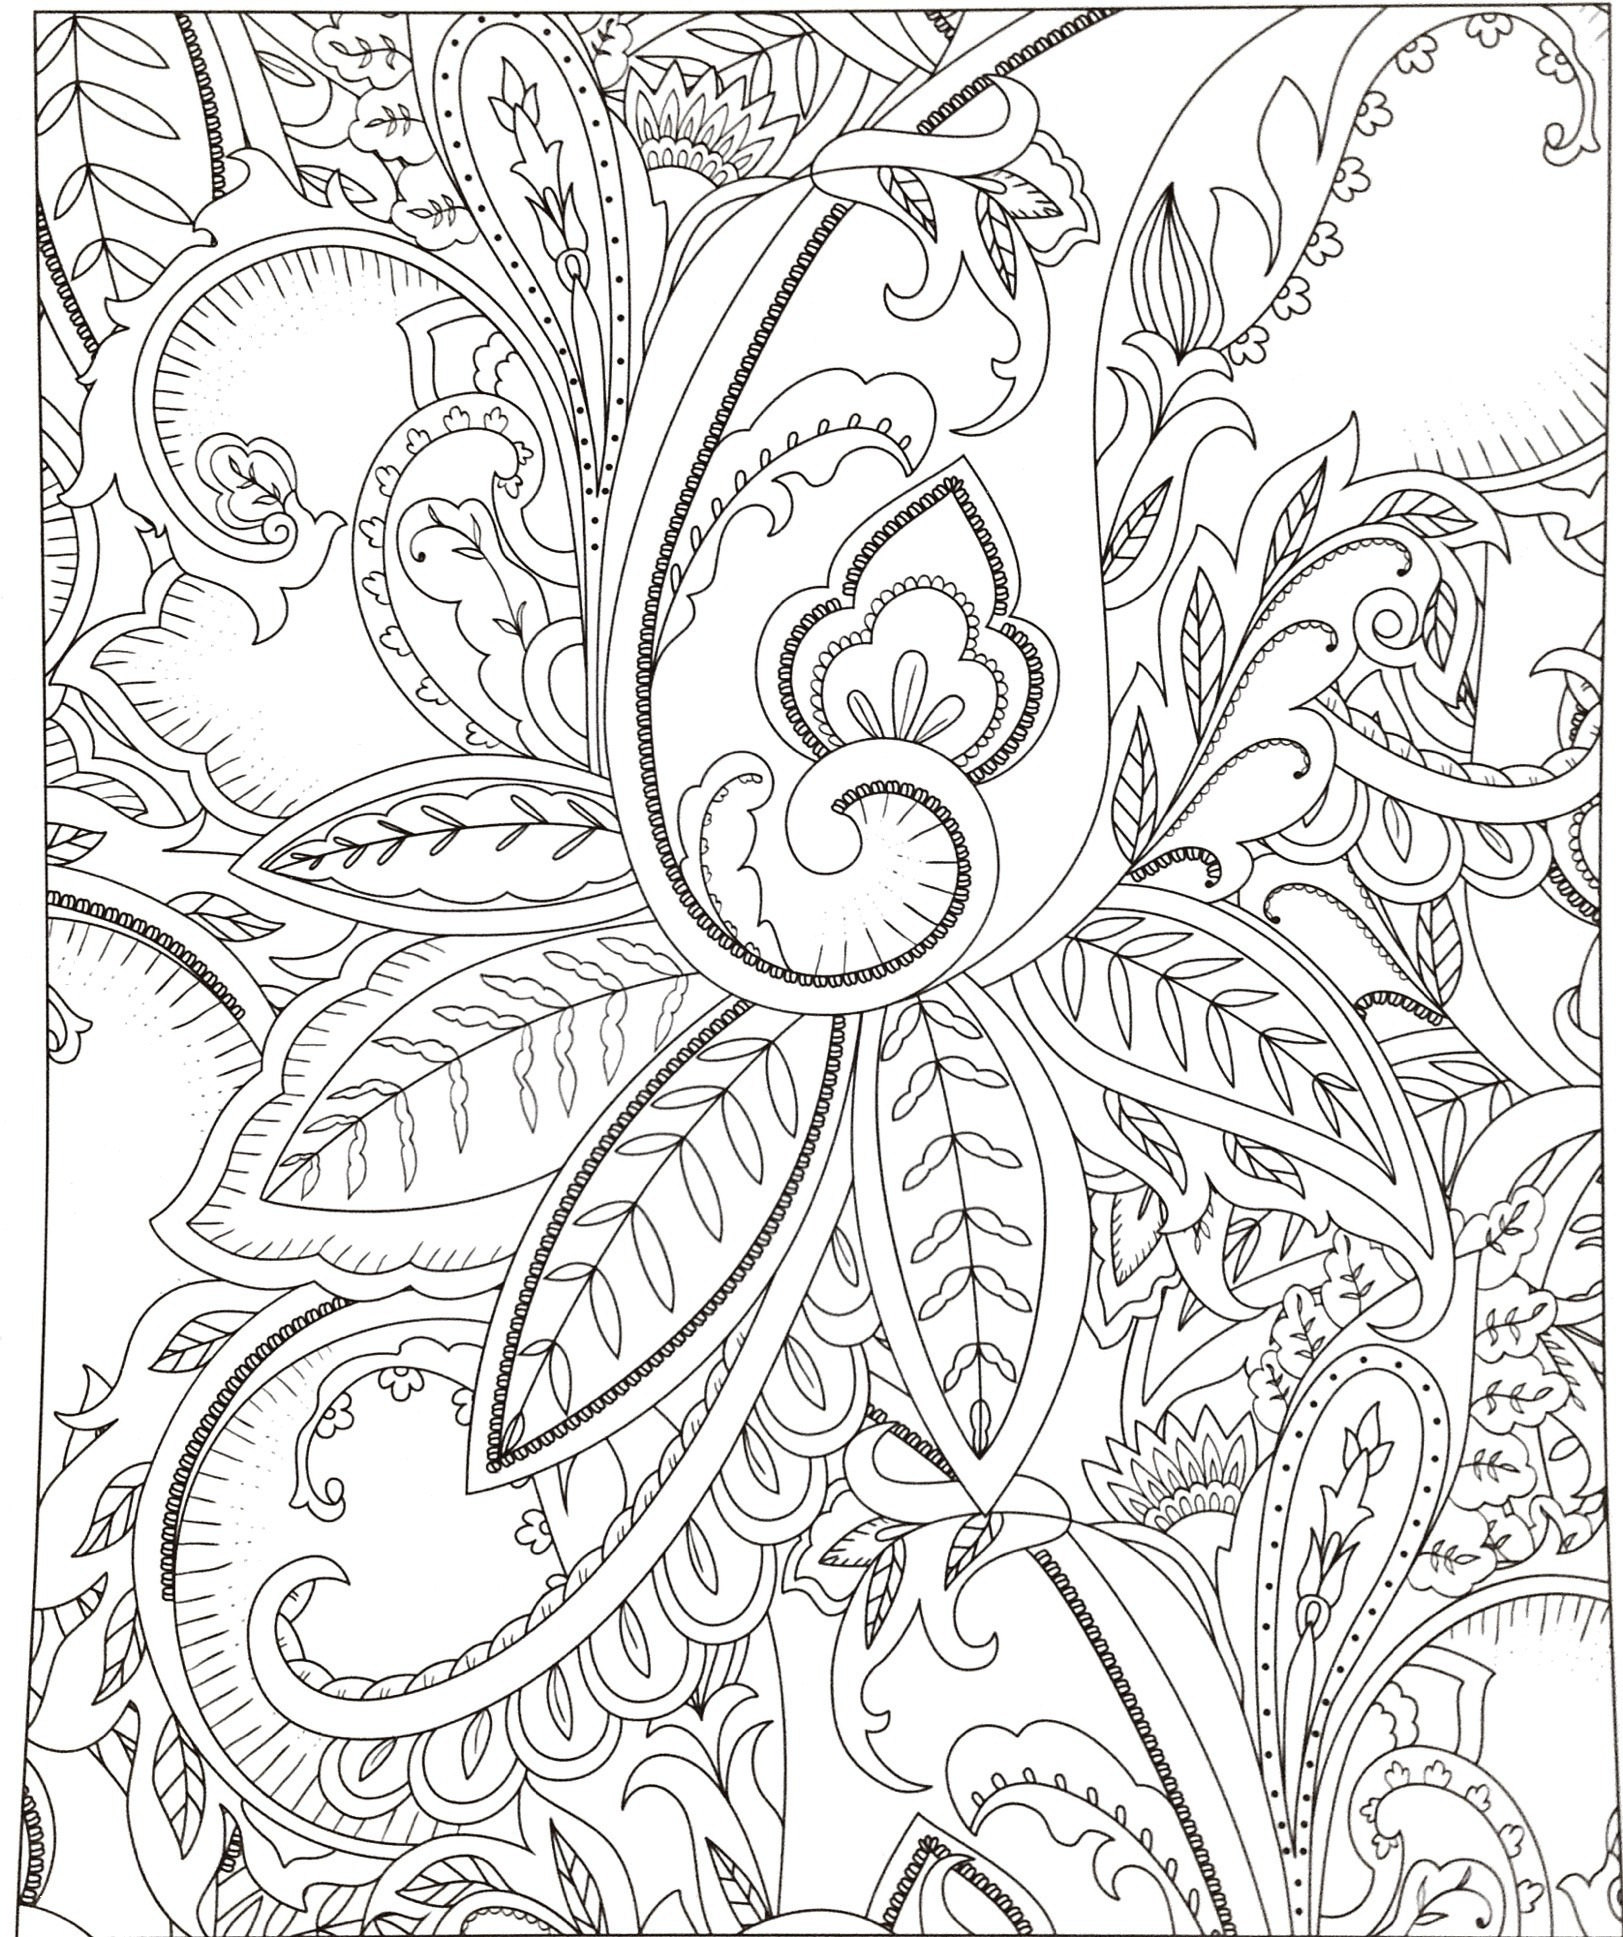 Wellie Wishers Coloring Pages  Collection 1t - Save it to your computer